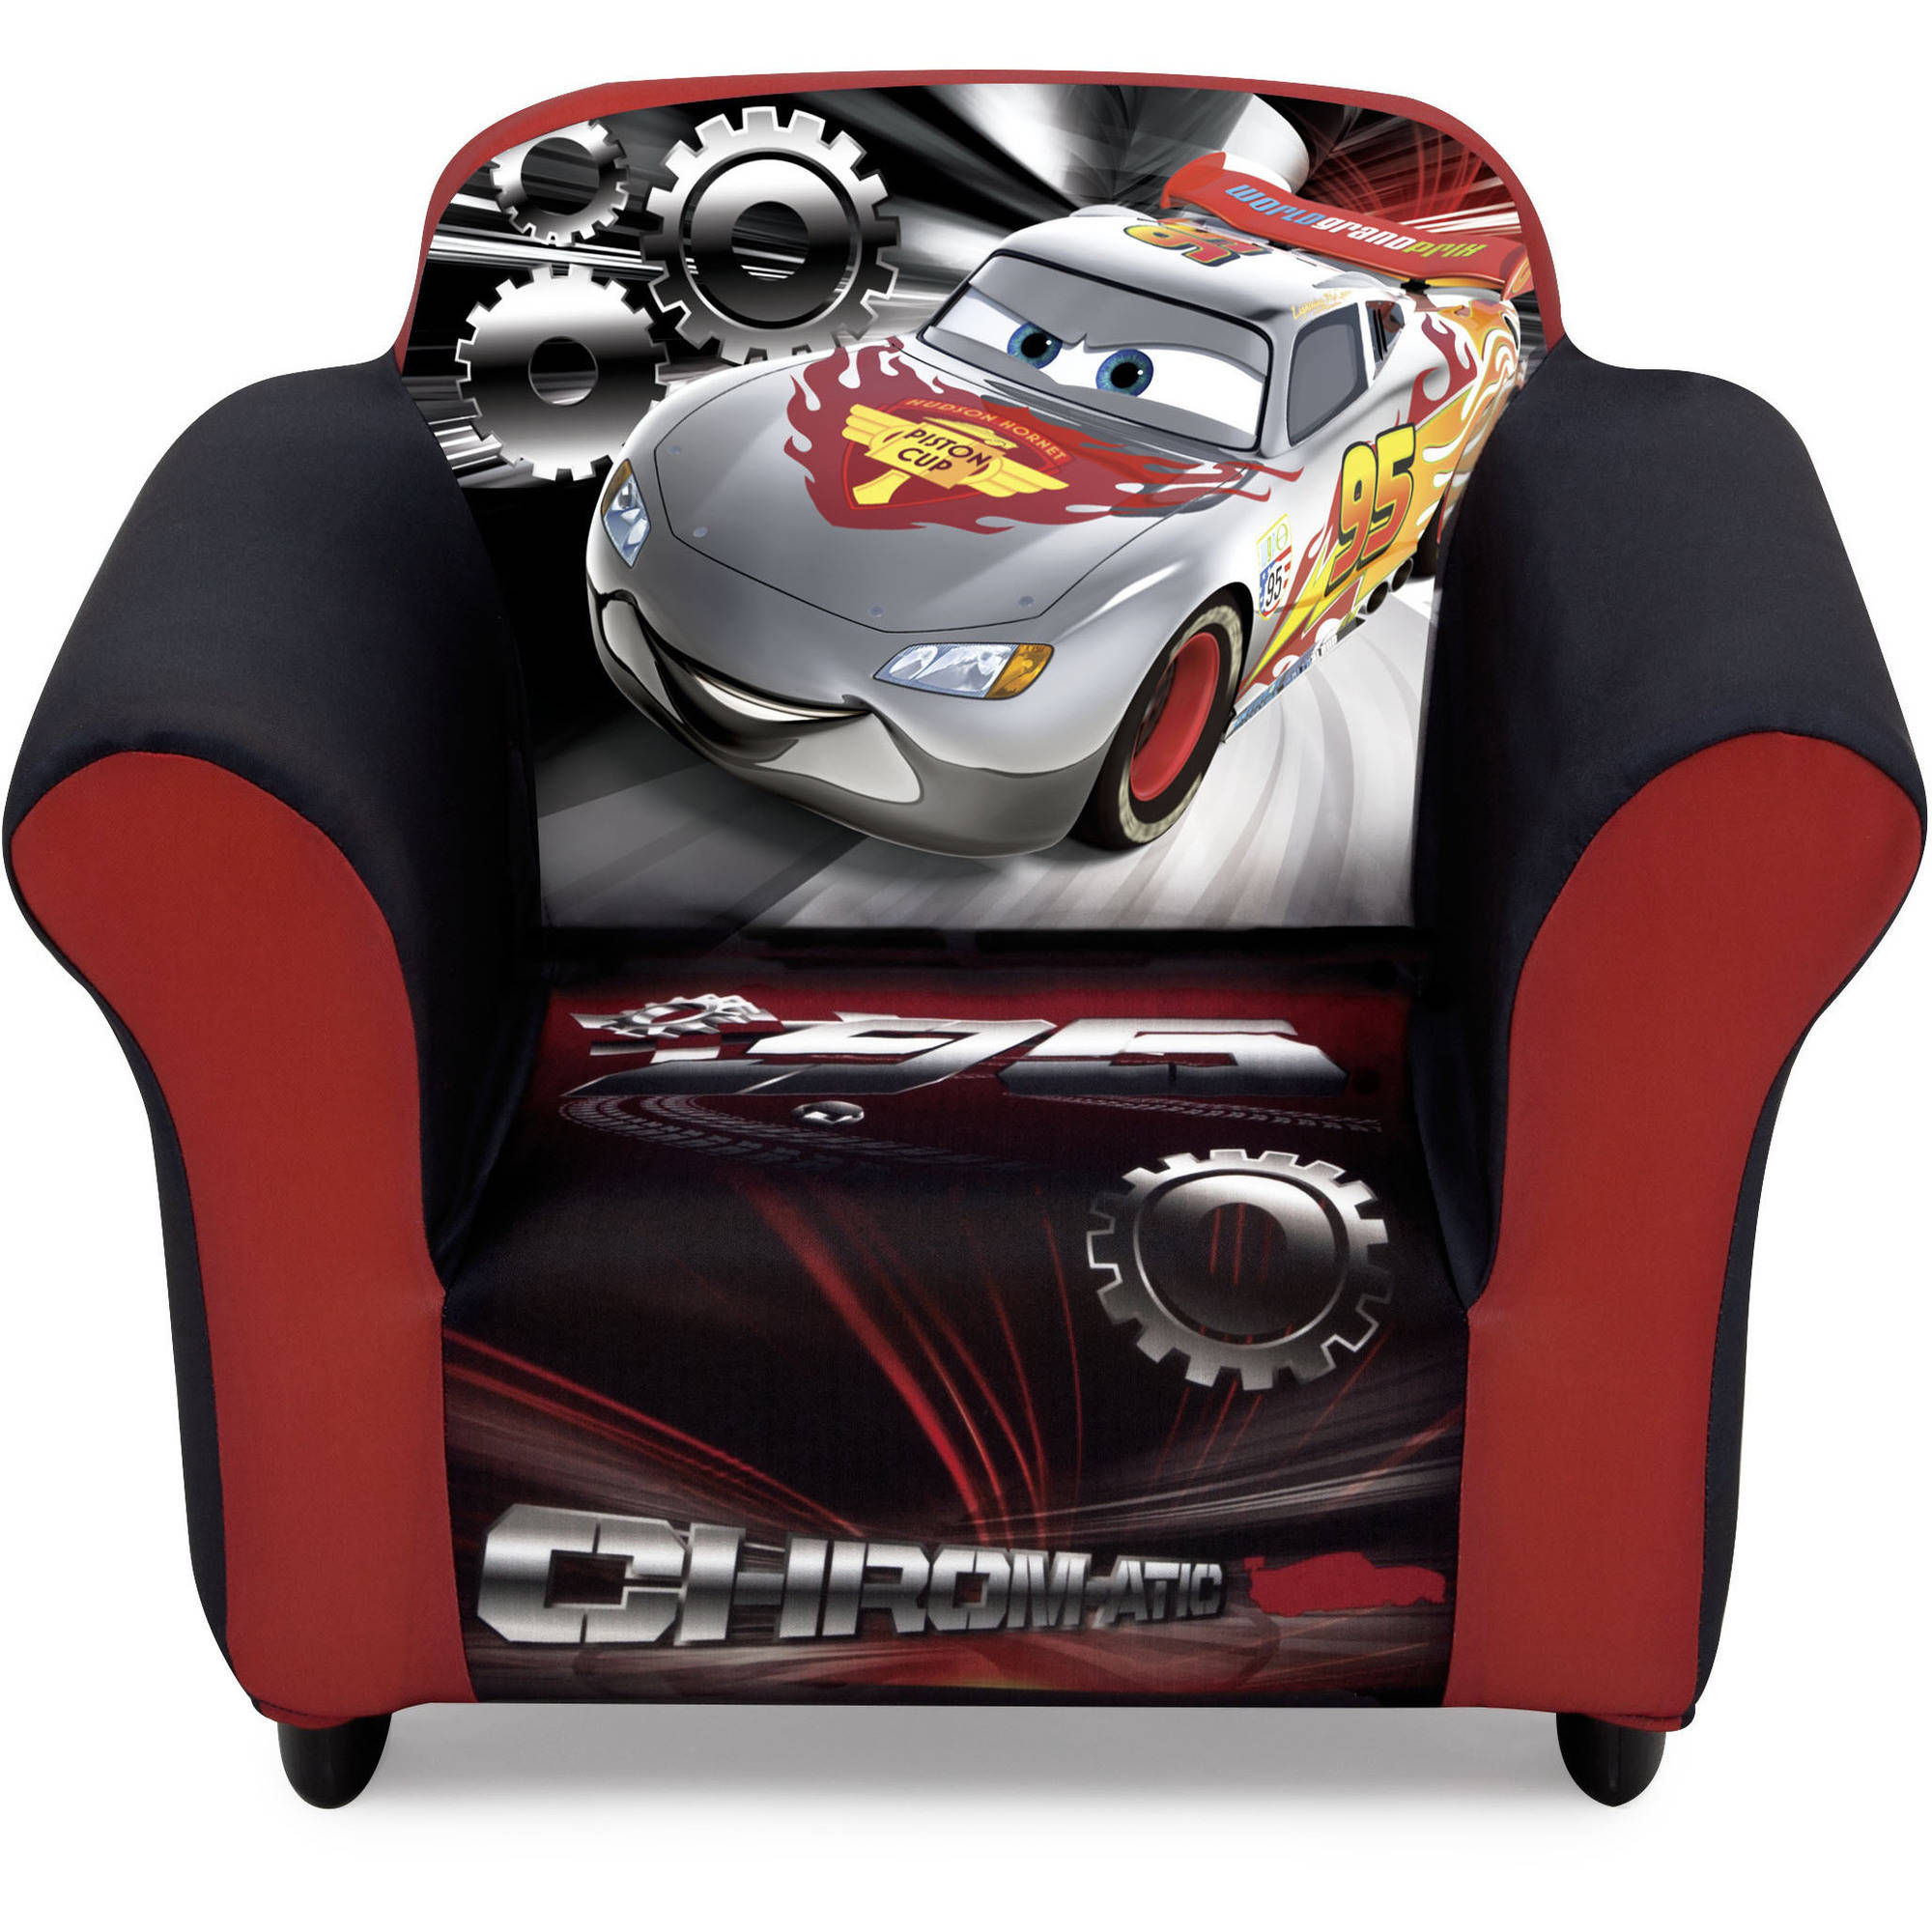 Disney/Pixar Cars Plastic Frame Upholstered Chair